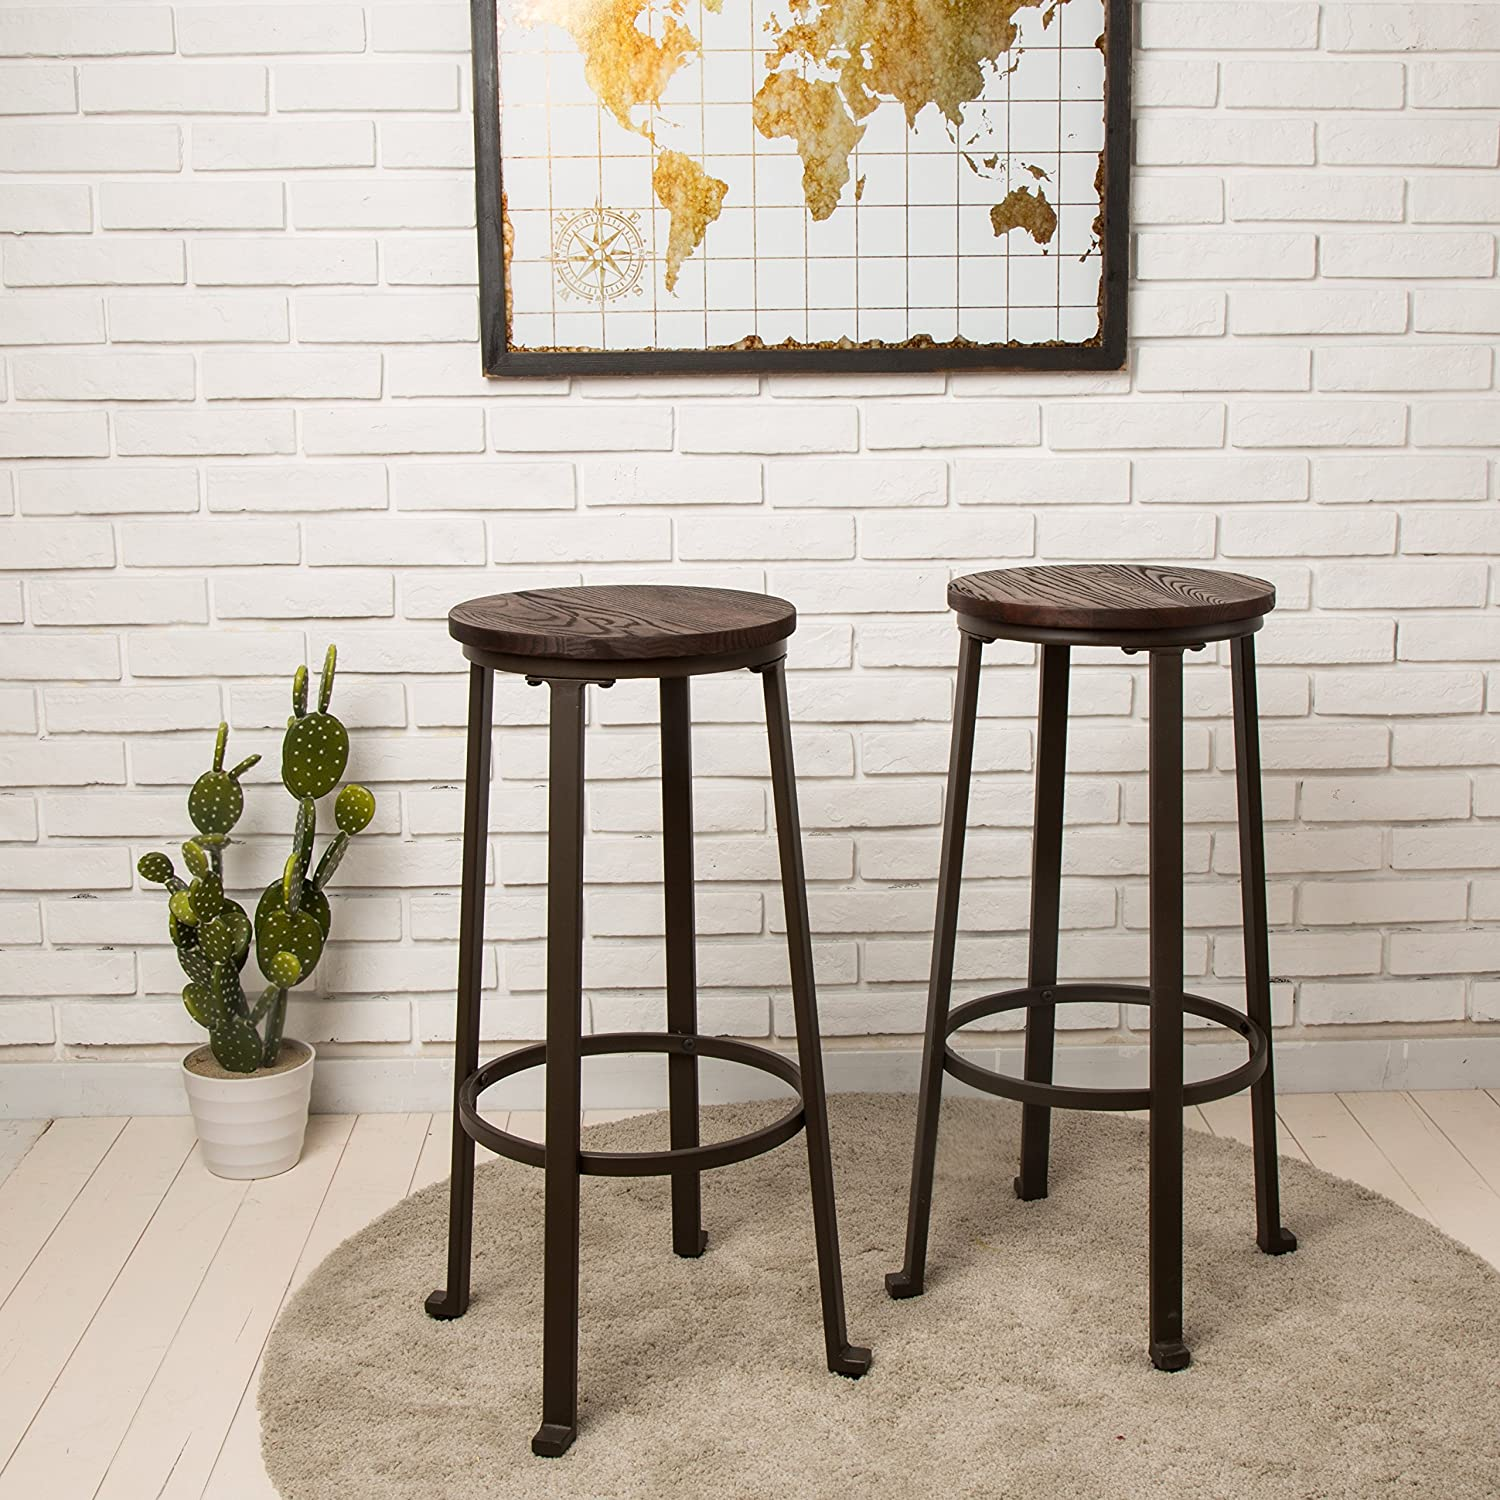 Glitzhome Rustic Steel Bar Stool Round Wood Top Dining Room Pub Chairs Set of Two